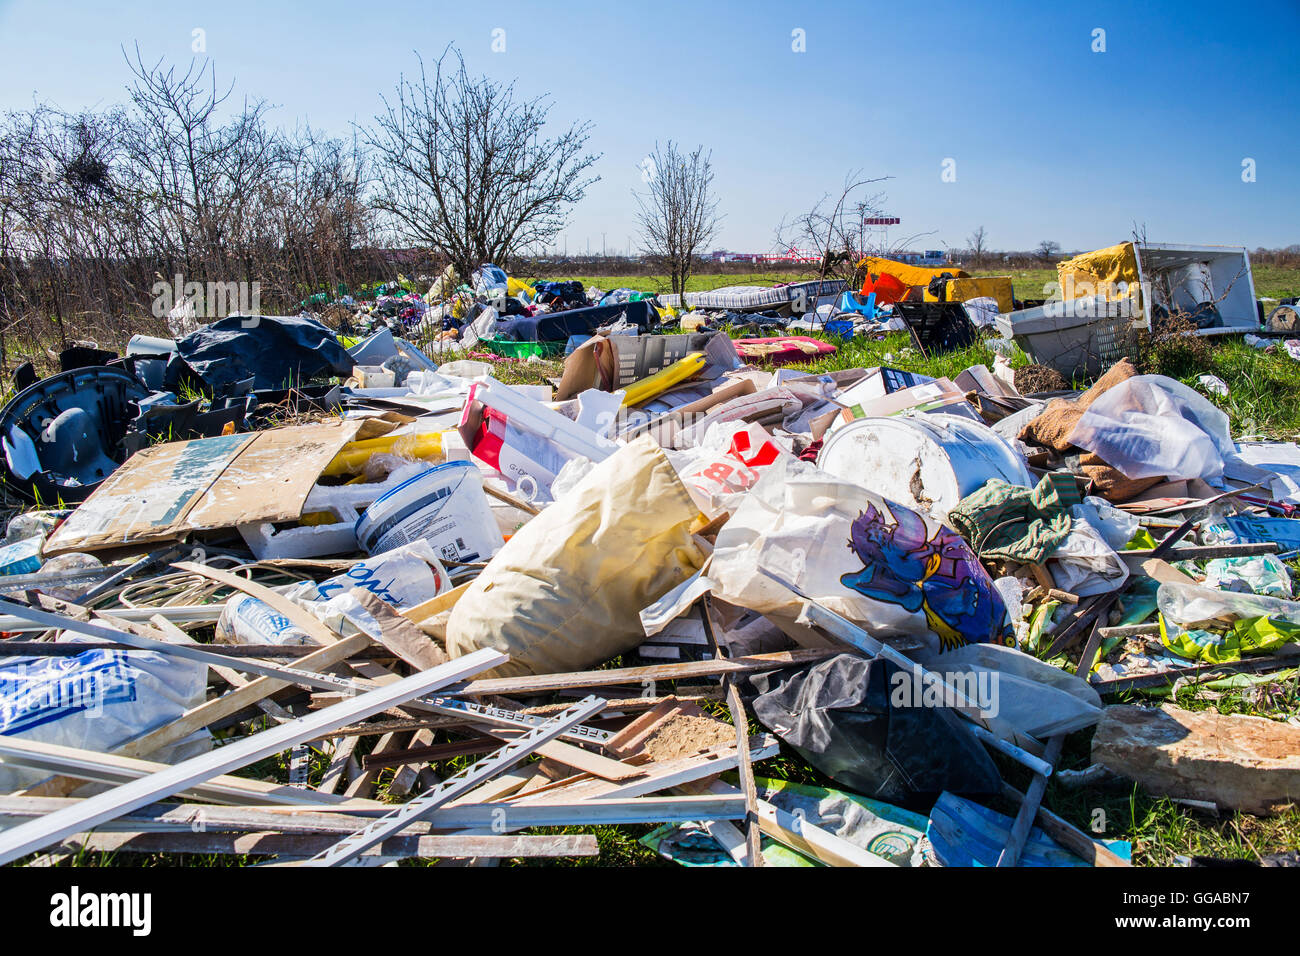 A huge illegal landfill, outskirts of town. - Stock Image